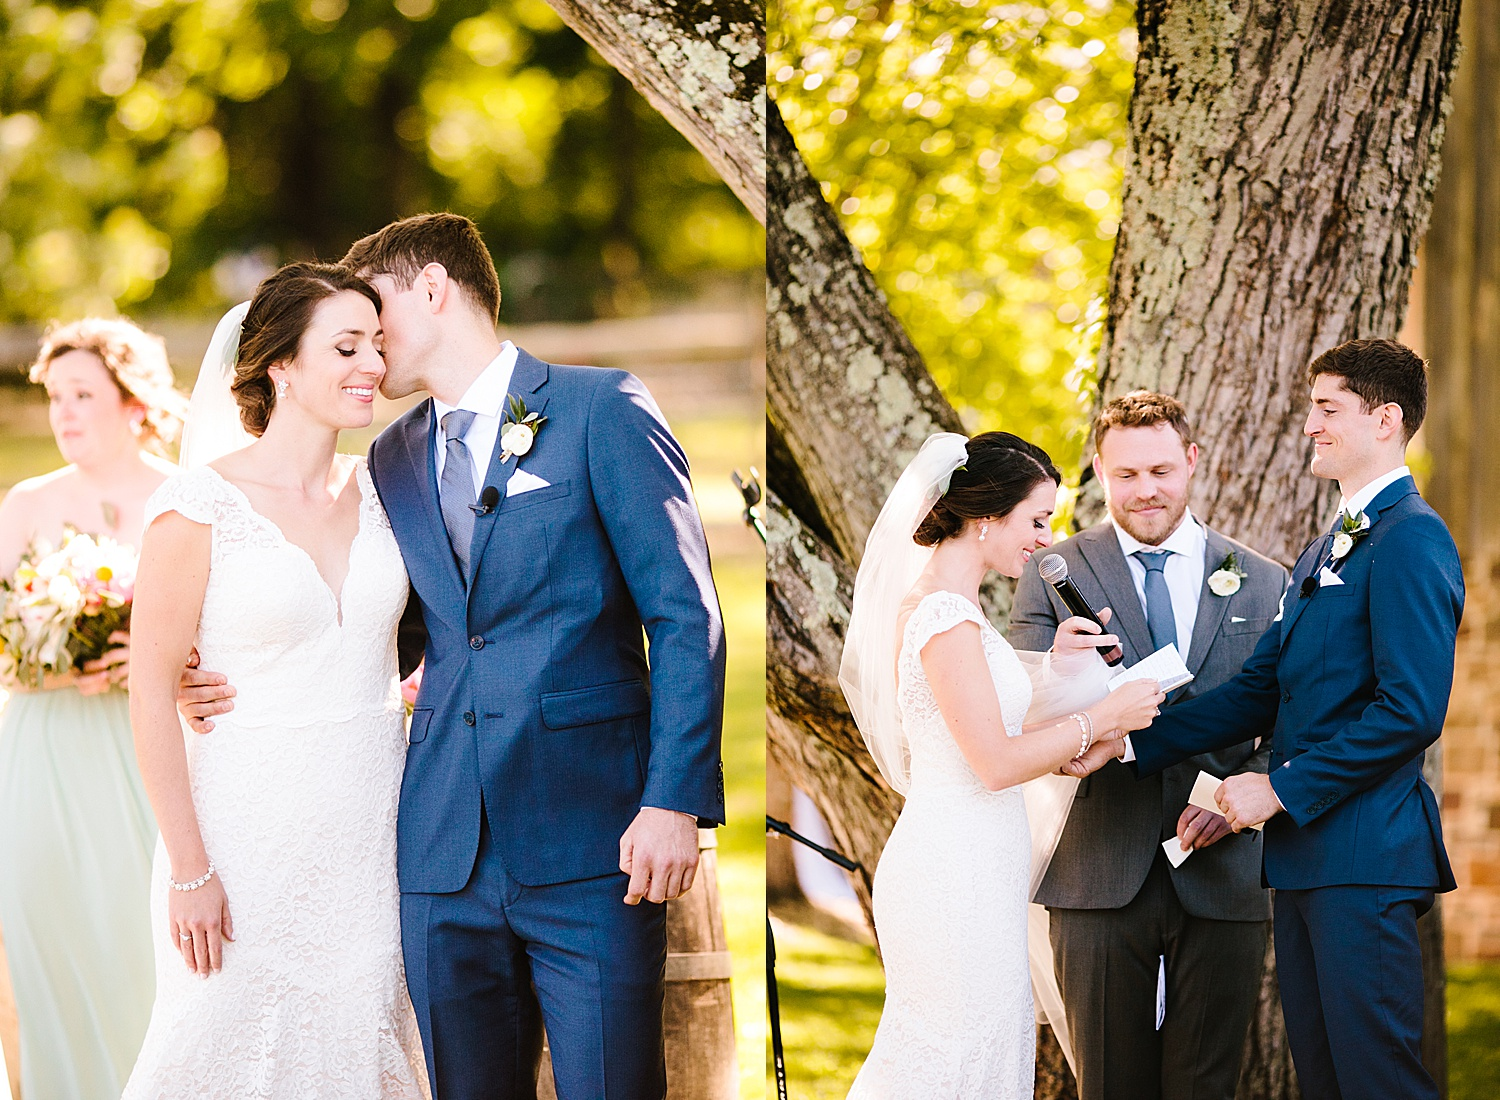 emilyaustin_rosebank_winery_newhope_farm_wedding_image088.jpg